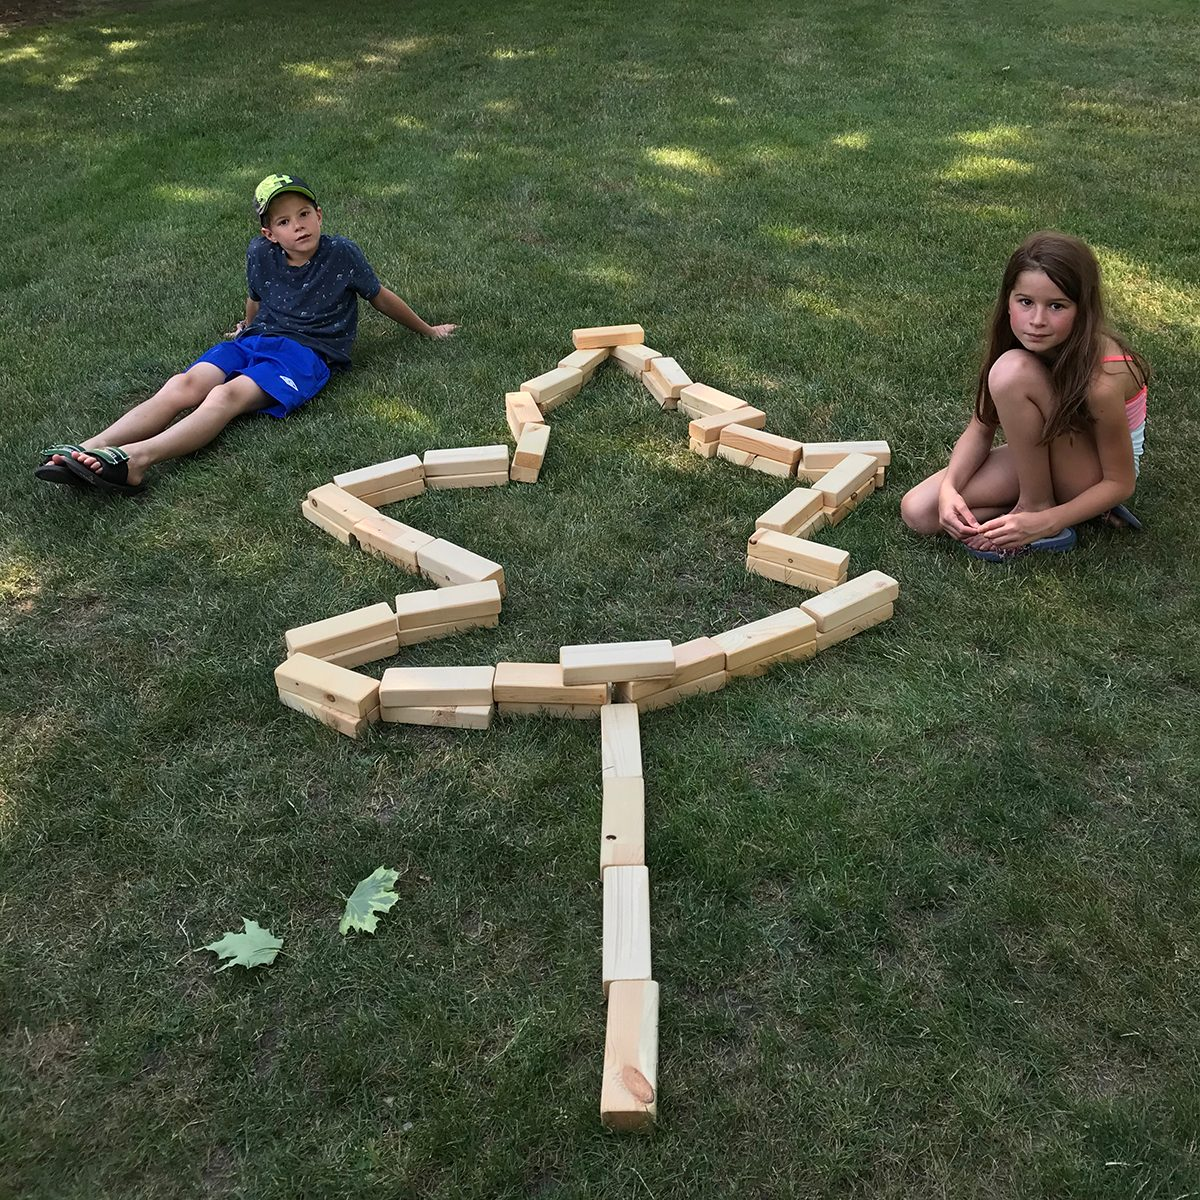 In the backyard photography - kids with maple leaf building blocks